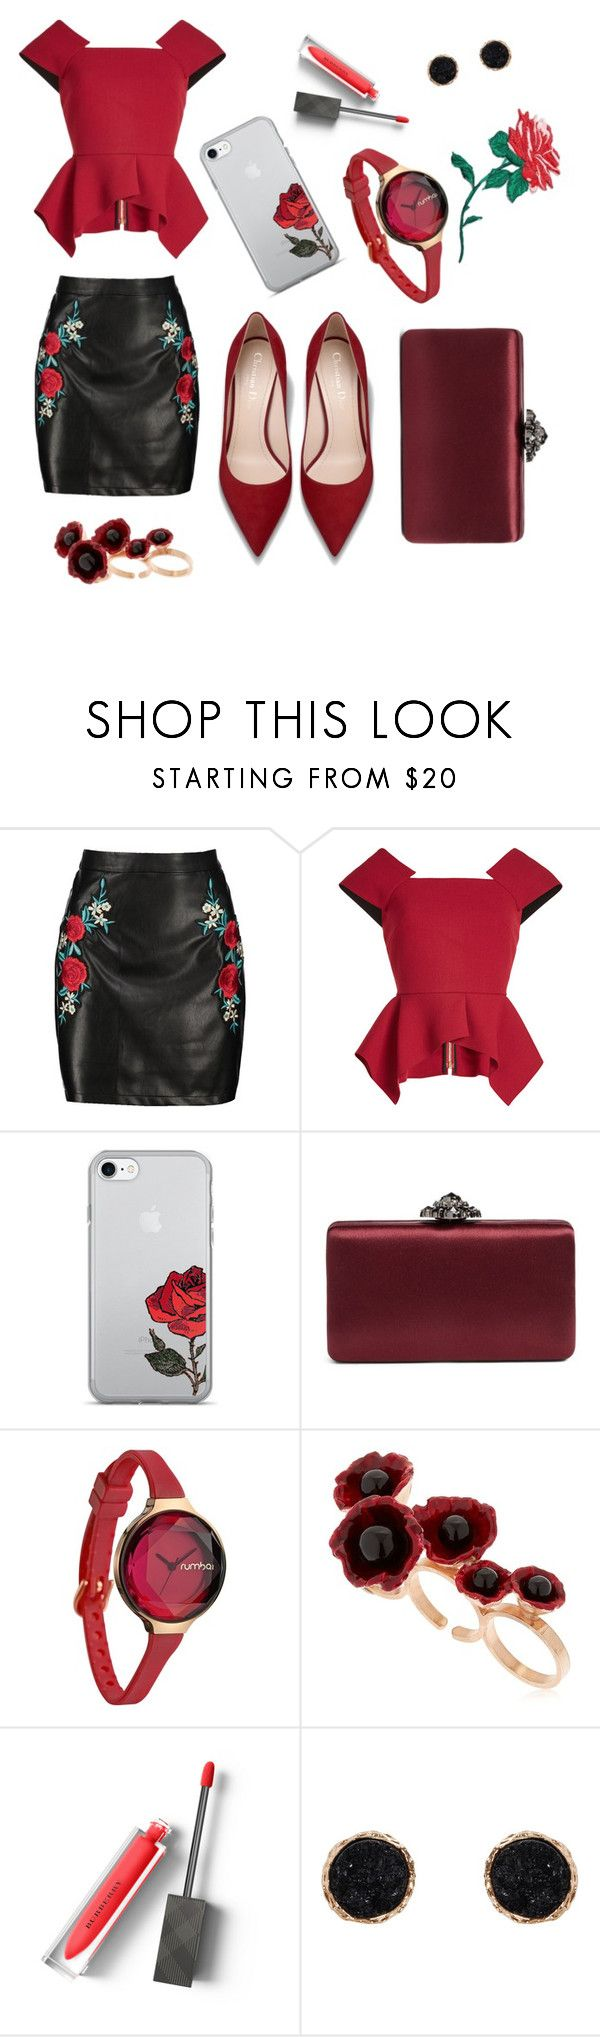 """Untitled #341"" by inesgenebra on Polyvore featuring beauty, Boohoo, Roland Mouret, Nordstrom, RumbaTime, Futuro Remoto, Burberry, Humble Chic and band.do"